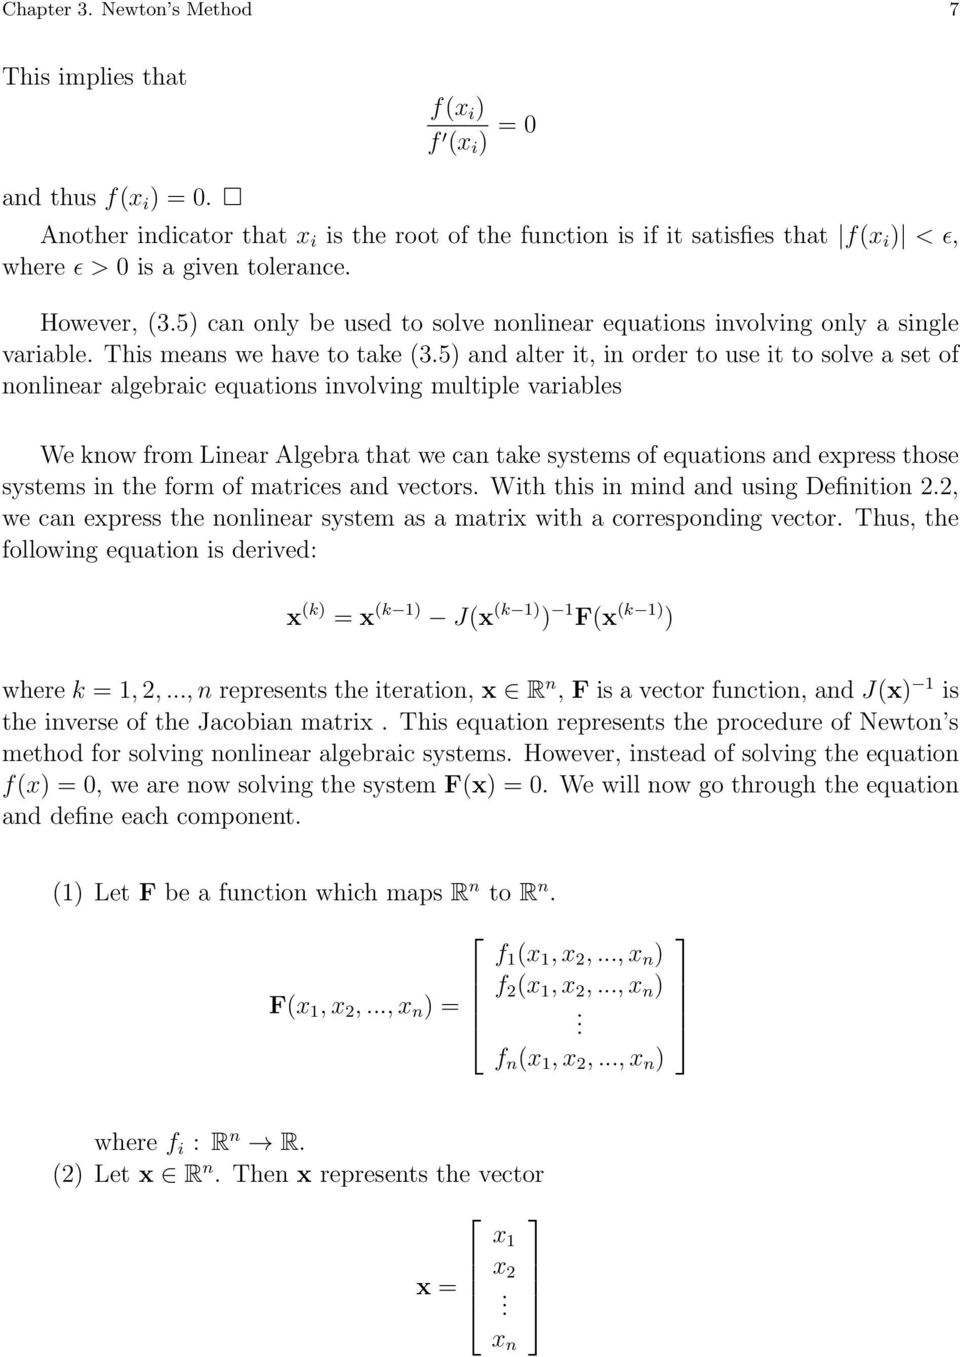 numerical methods for solving systems of nonlinear equations - pdf